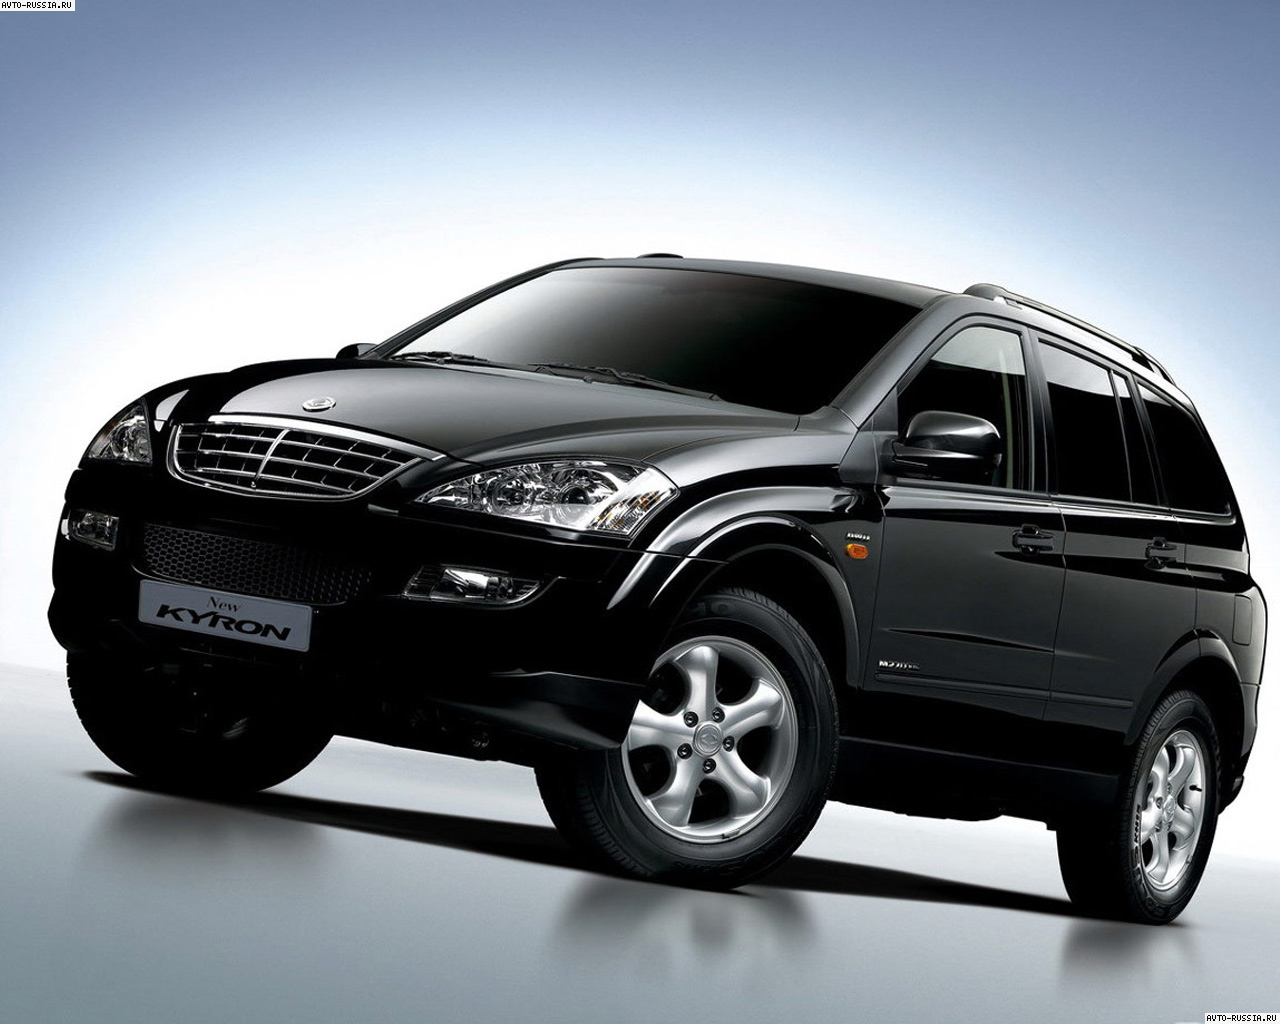 ssangyong kyron ii 2012 images #2